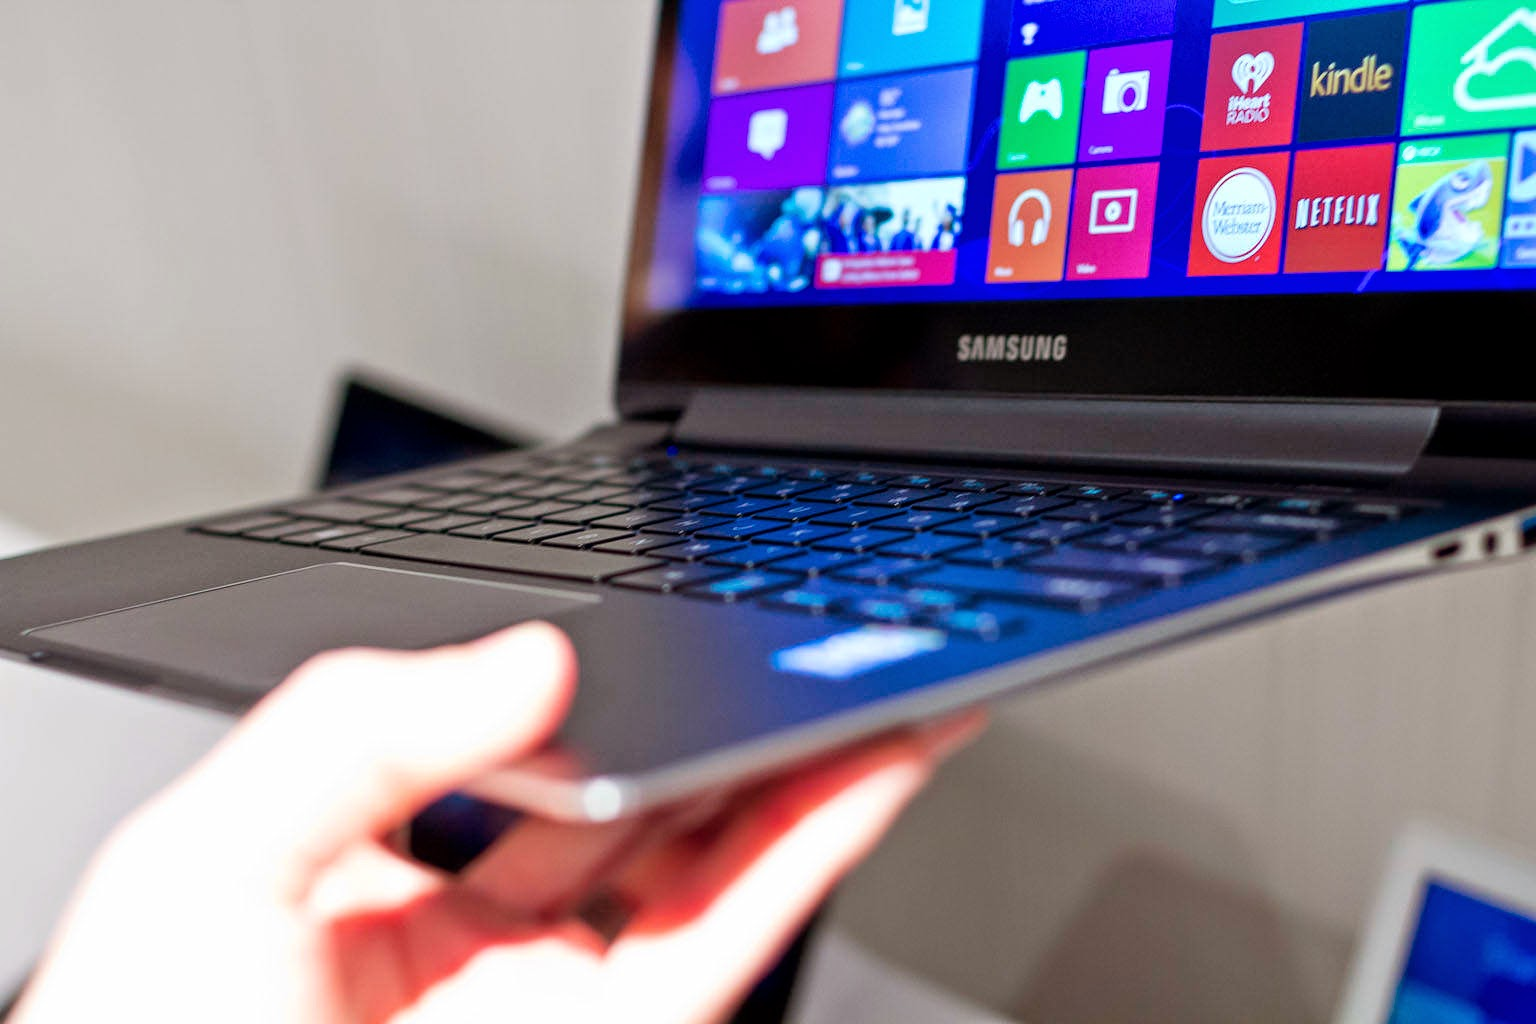 Laptop Notebook Samsung Terbaru